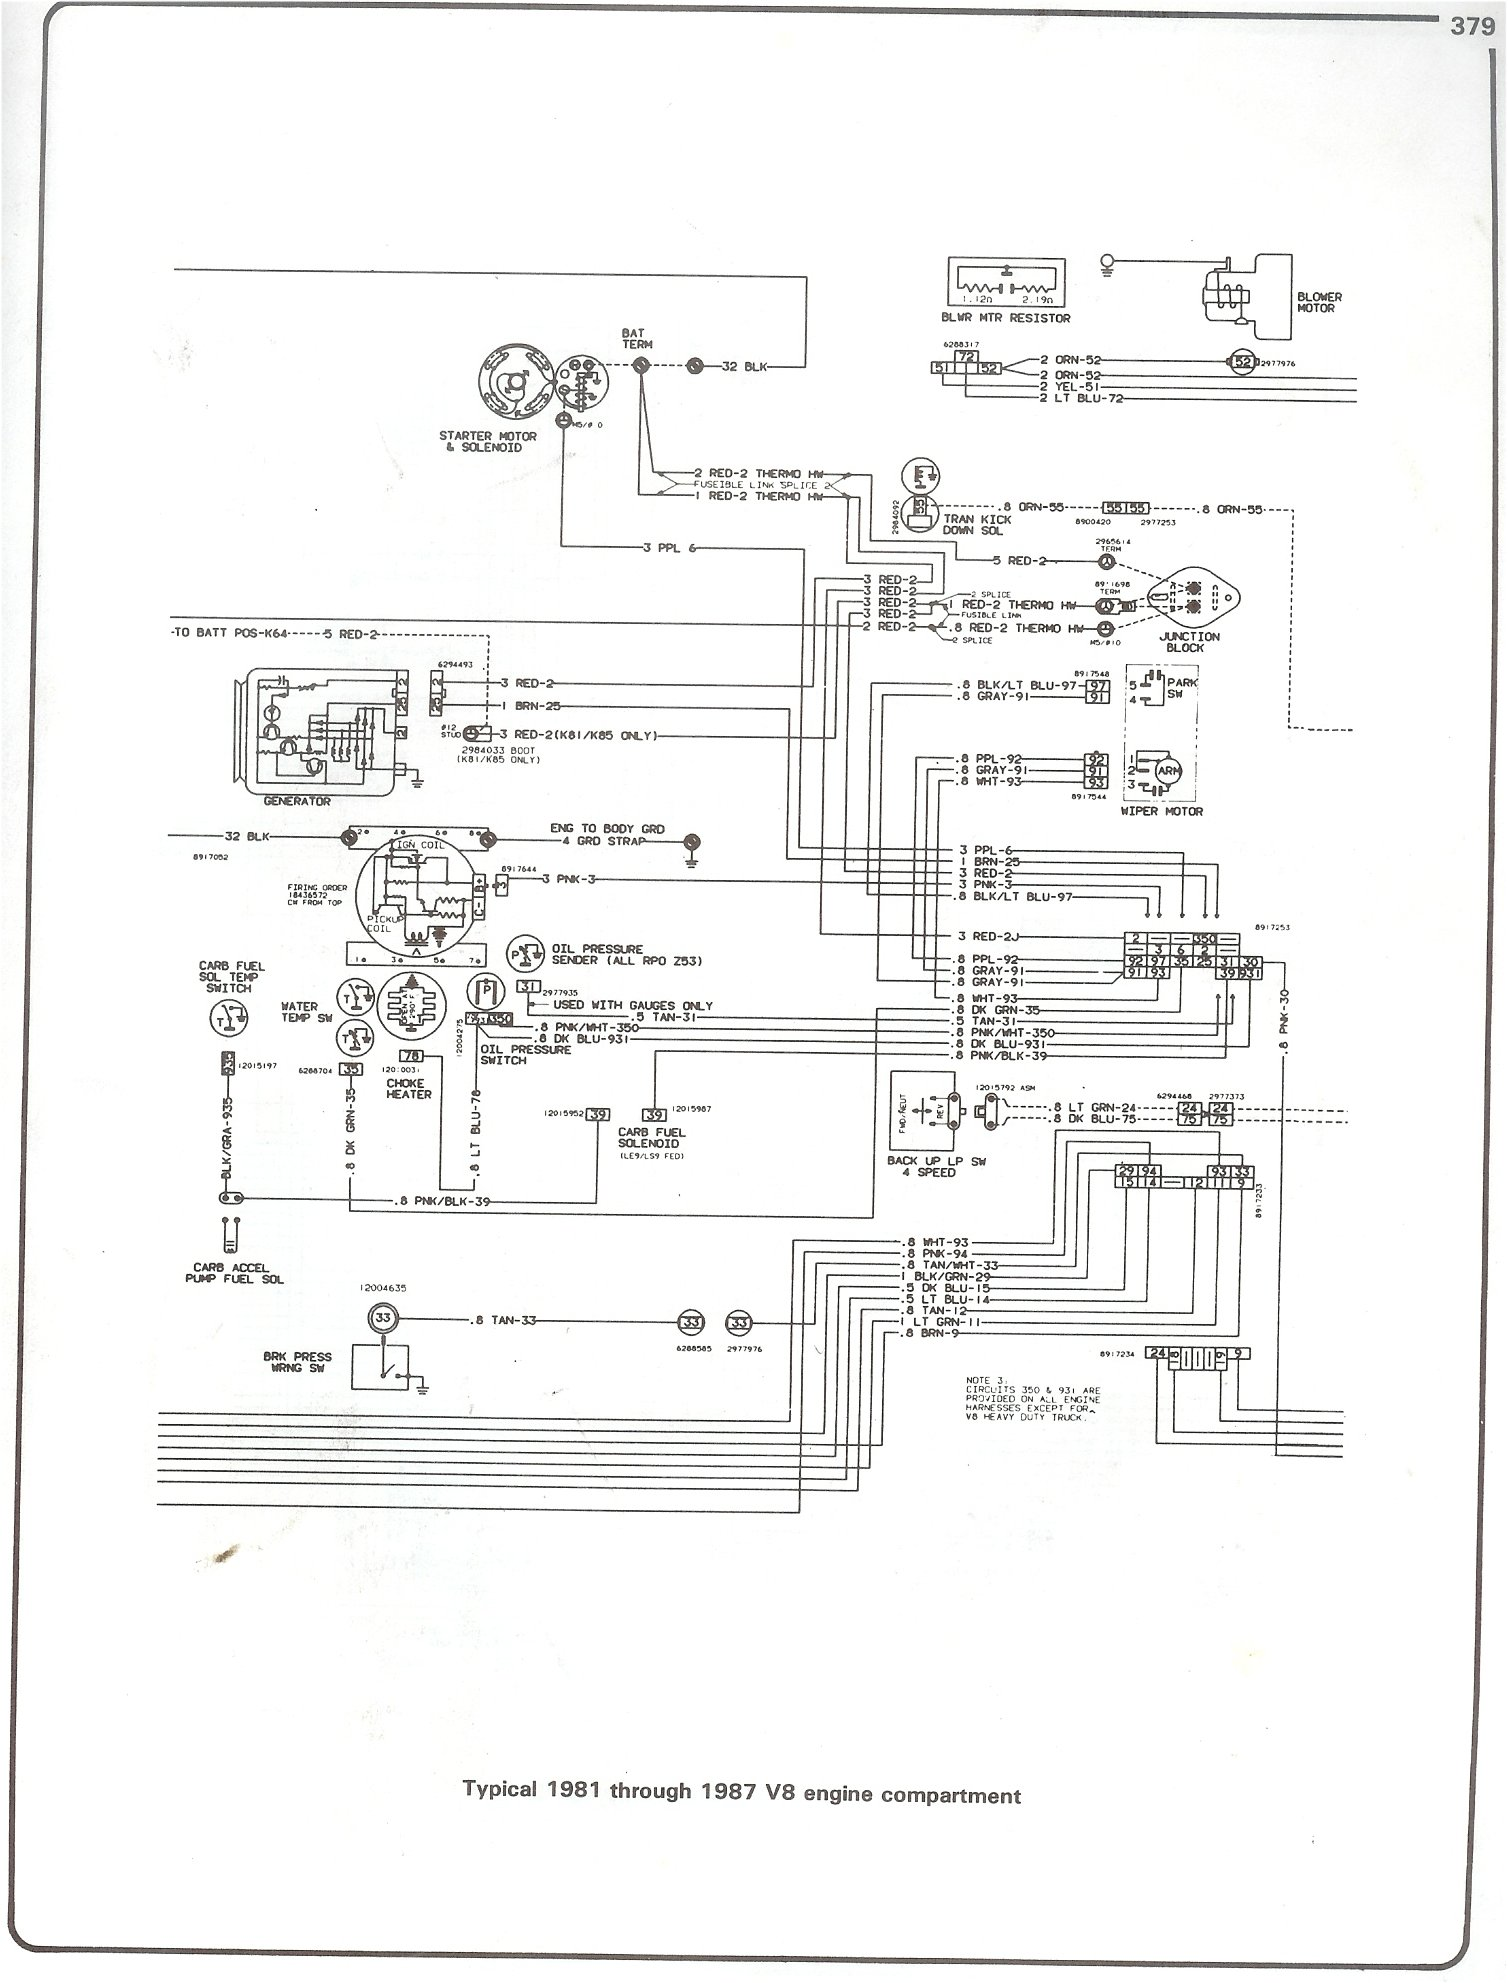 97 Chevy P30 Wiring Harness - Fan Limit Switch Wiring Diagram for Wiring  Diagram SchematicsWiring Diagram Schematics